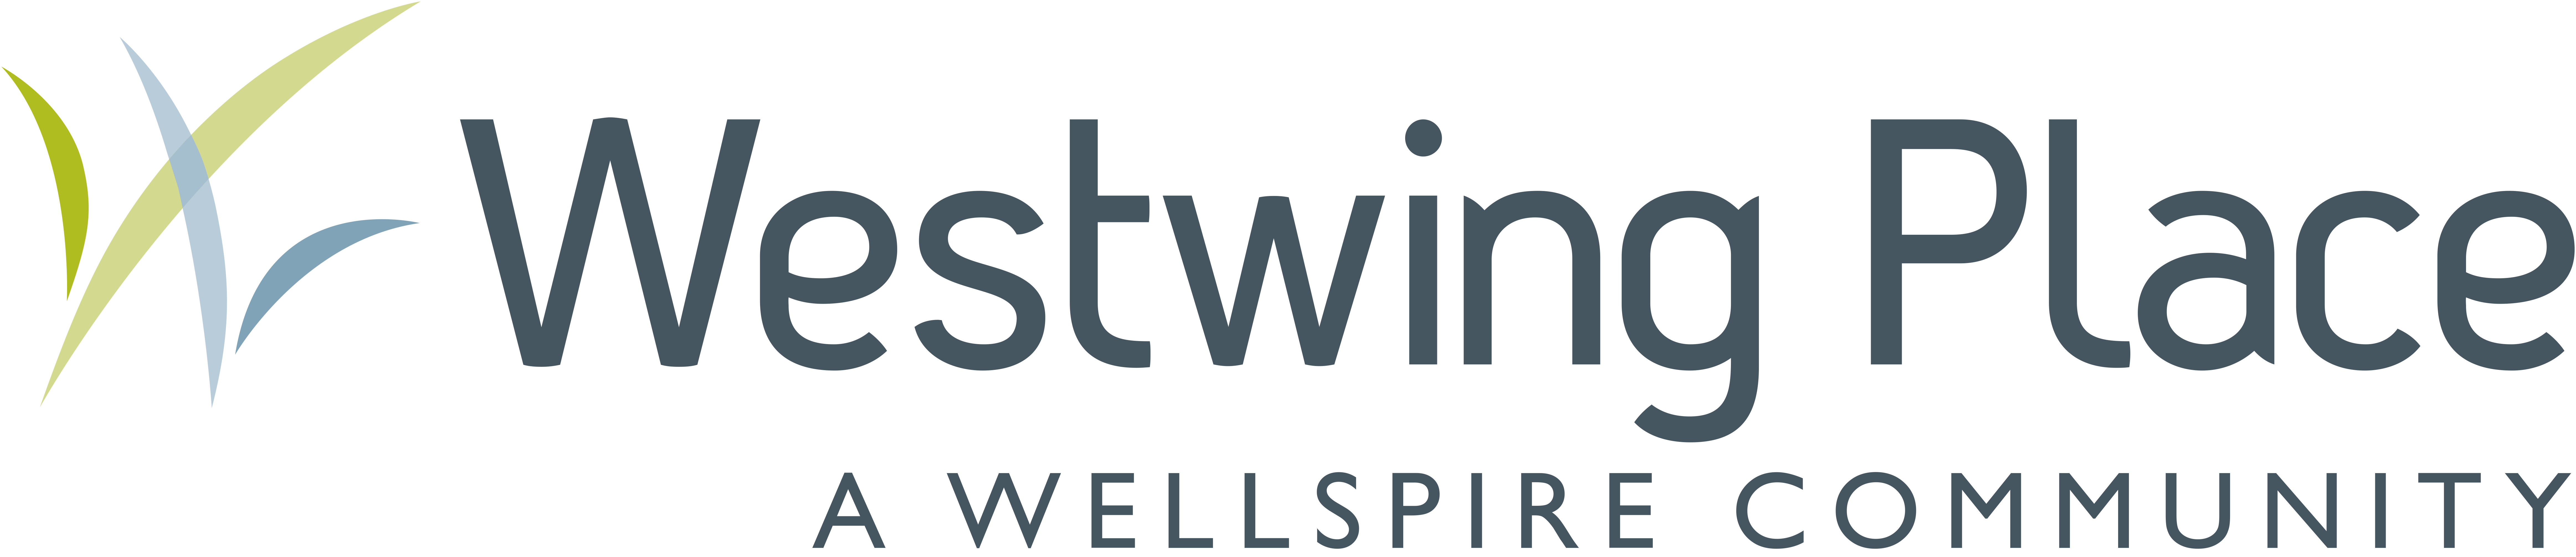 Westwing Place logo